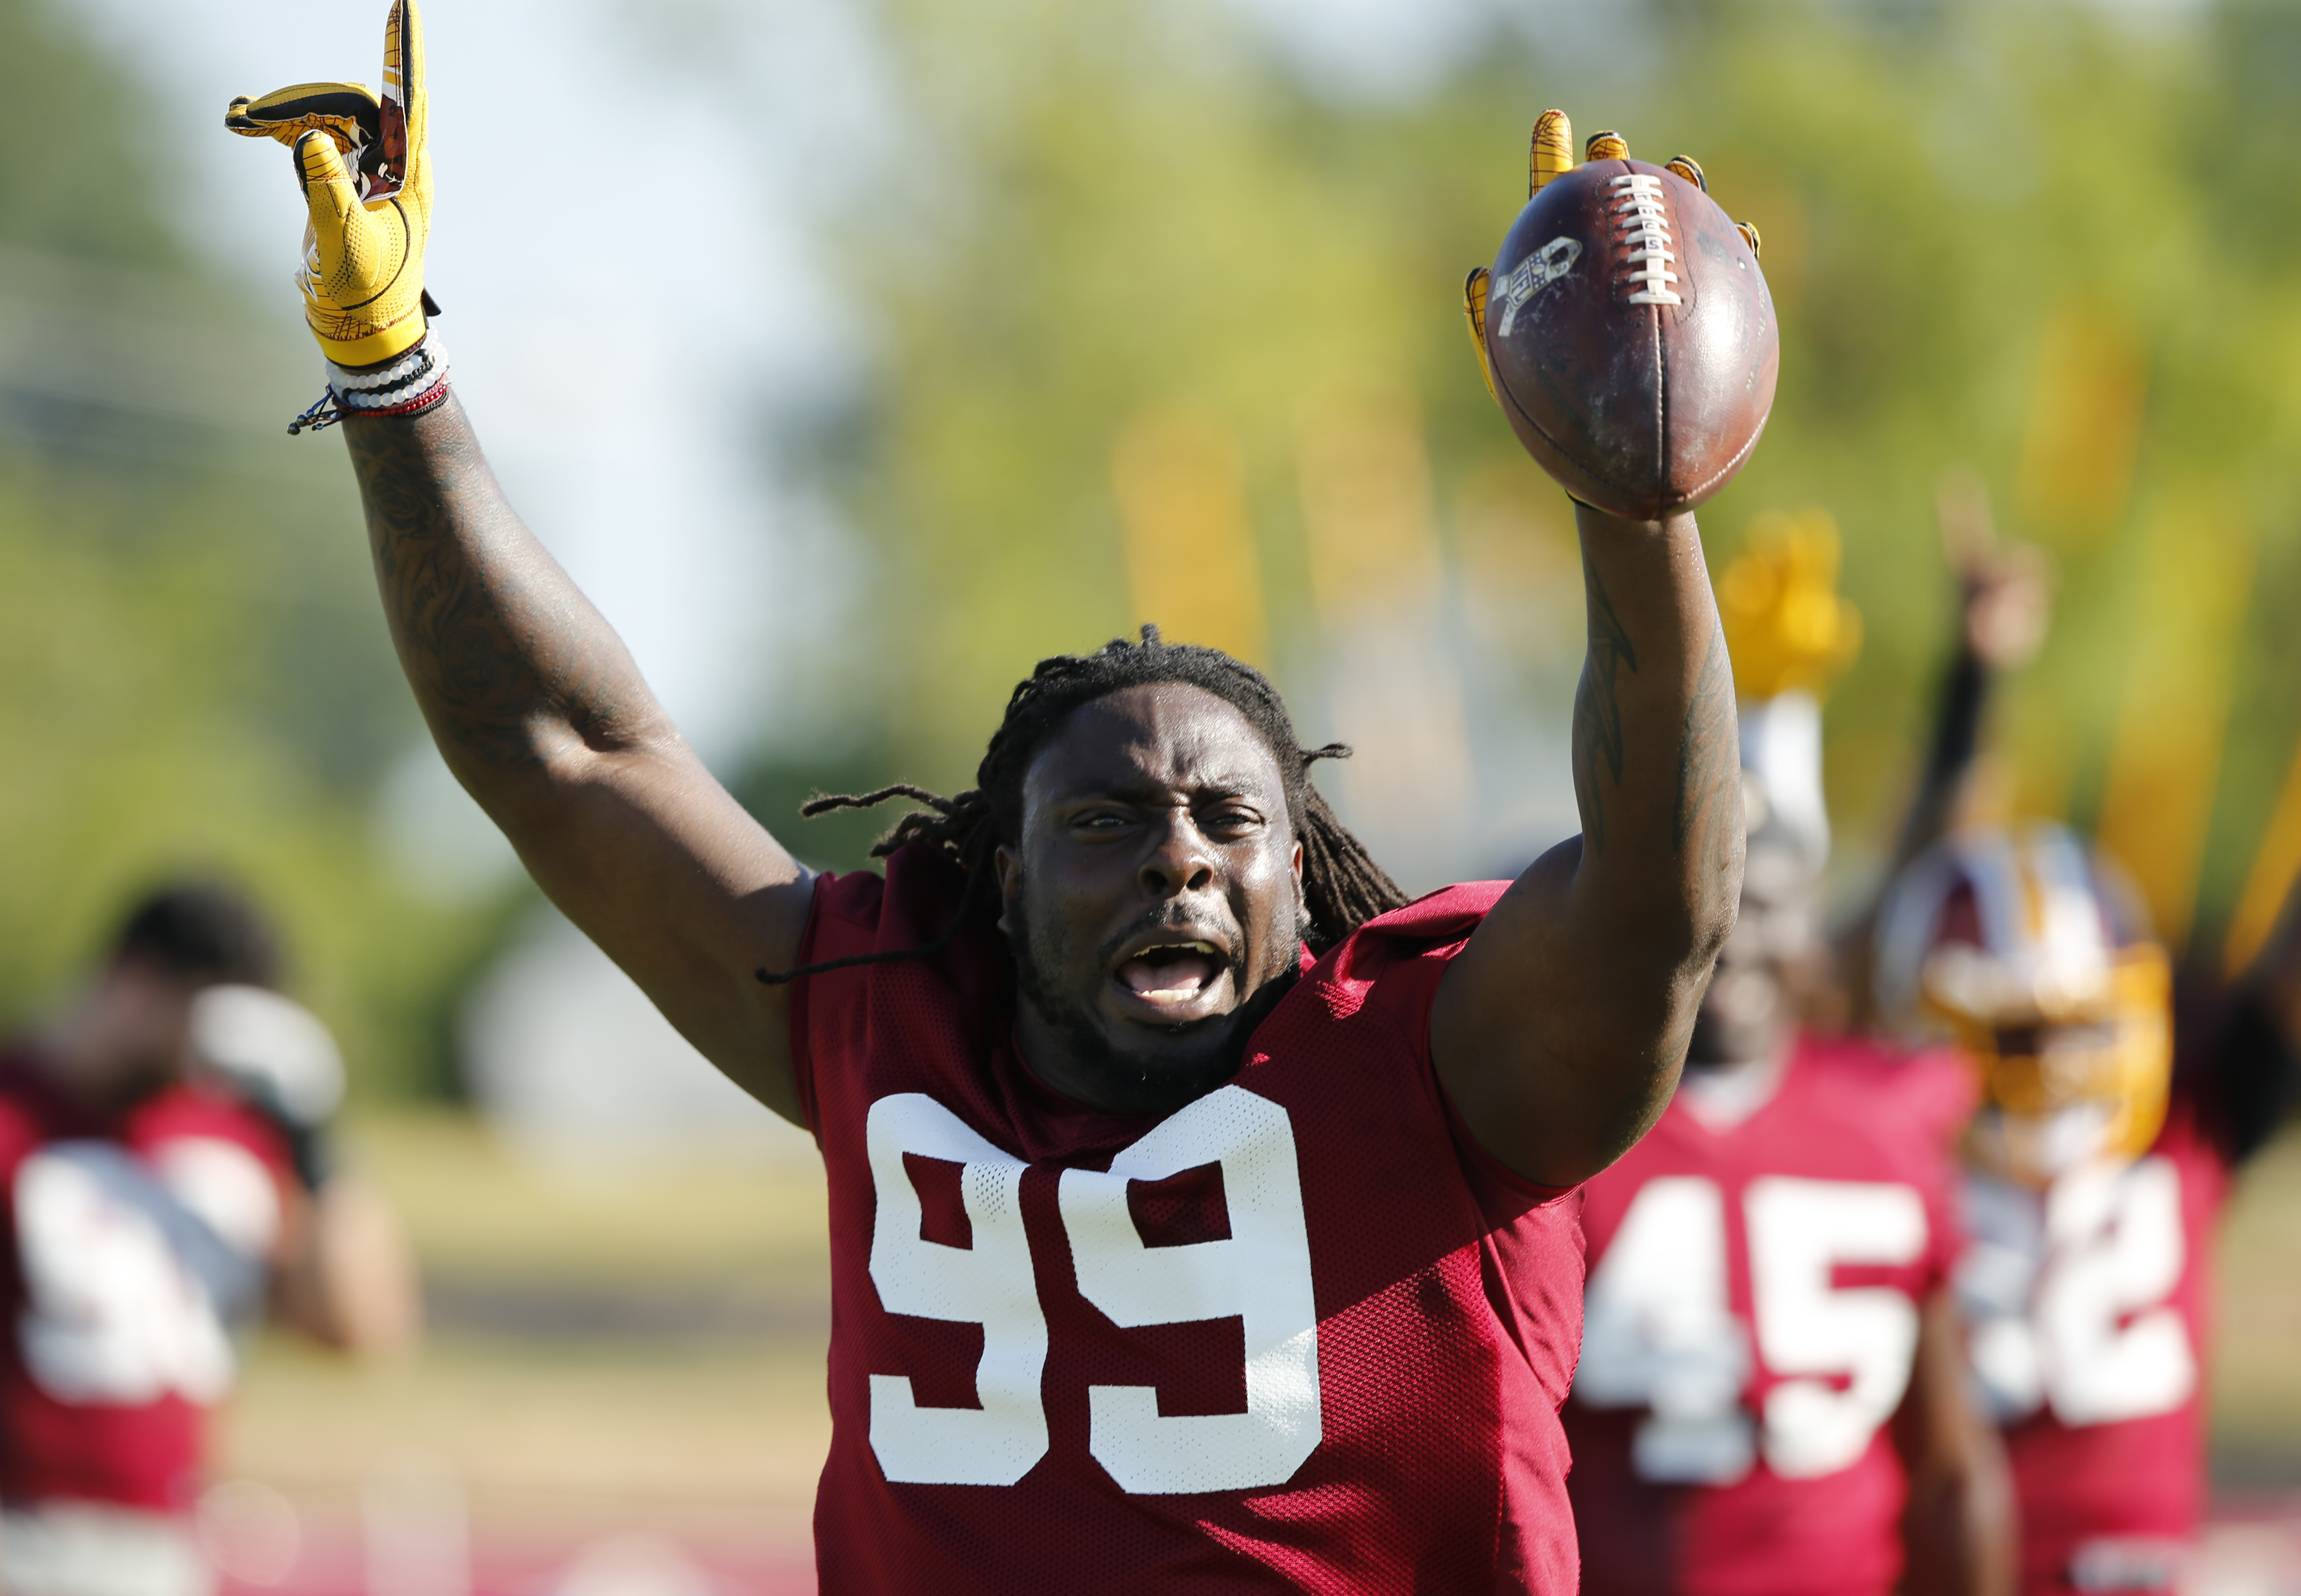 Washington Redskins defensive end Ricky Jean Francois (99) celebrates catching a practice punt signifying the end of practice during the last day of the Washington Redskins NFL football teams training camp in Richmond, Va., Monday, Aug. 15, 2016. (AP Phot